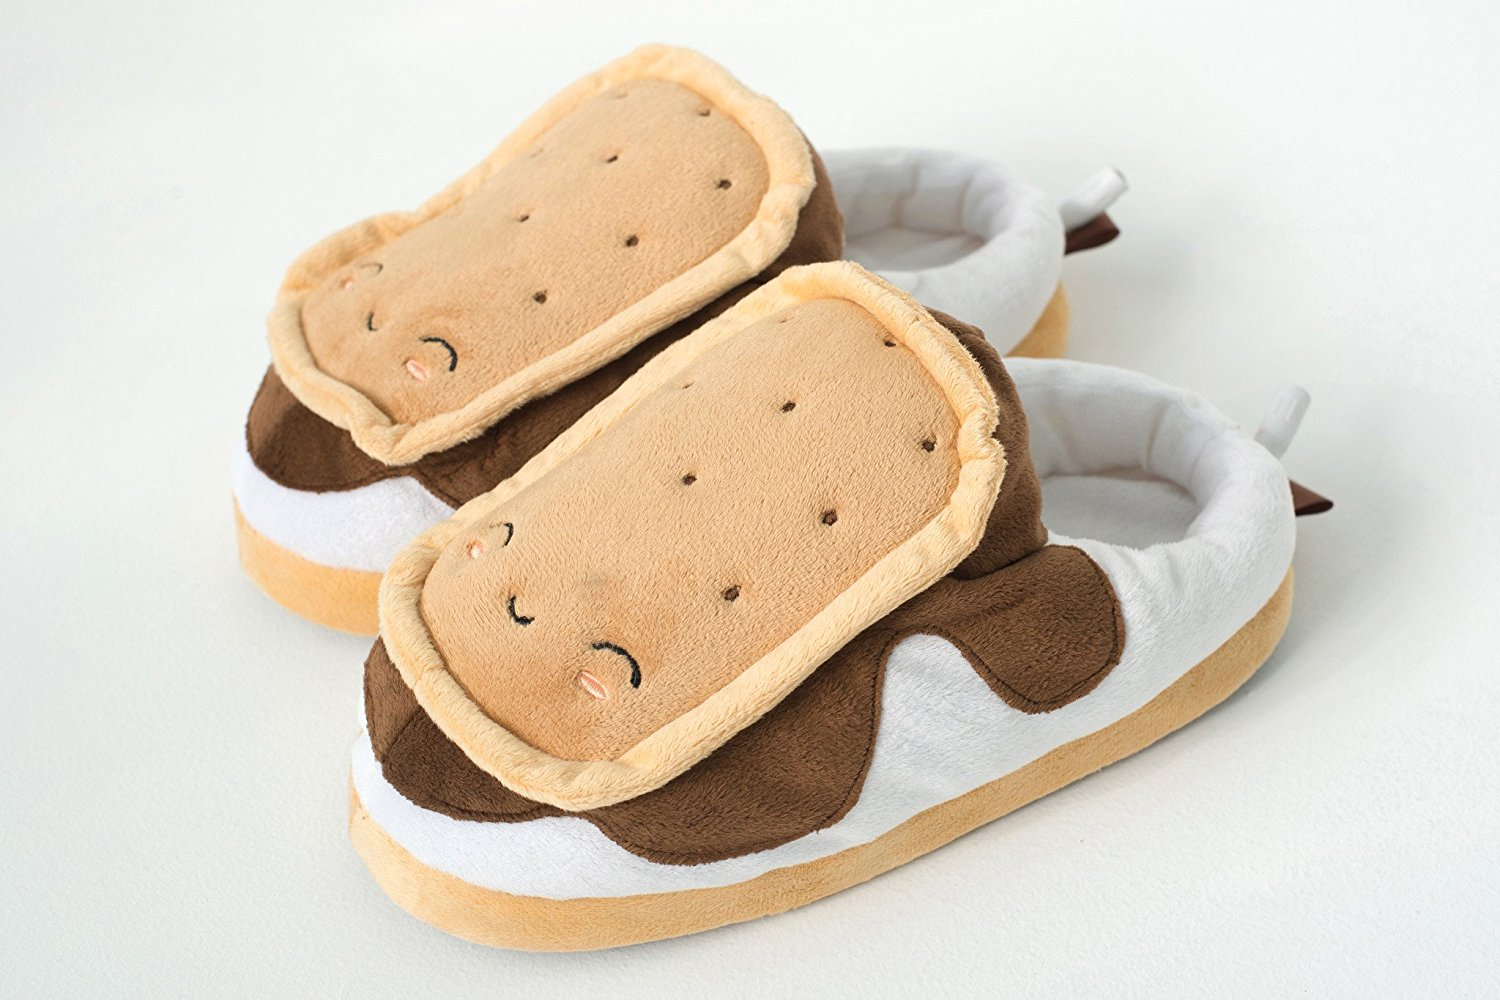 S'mores slippers